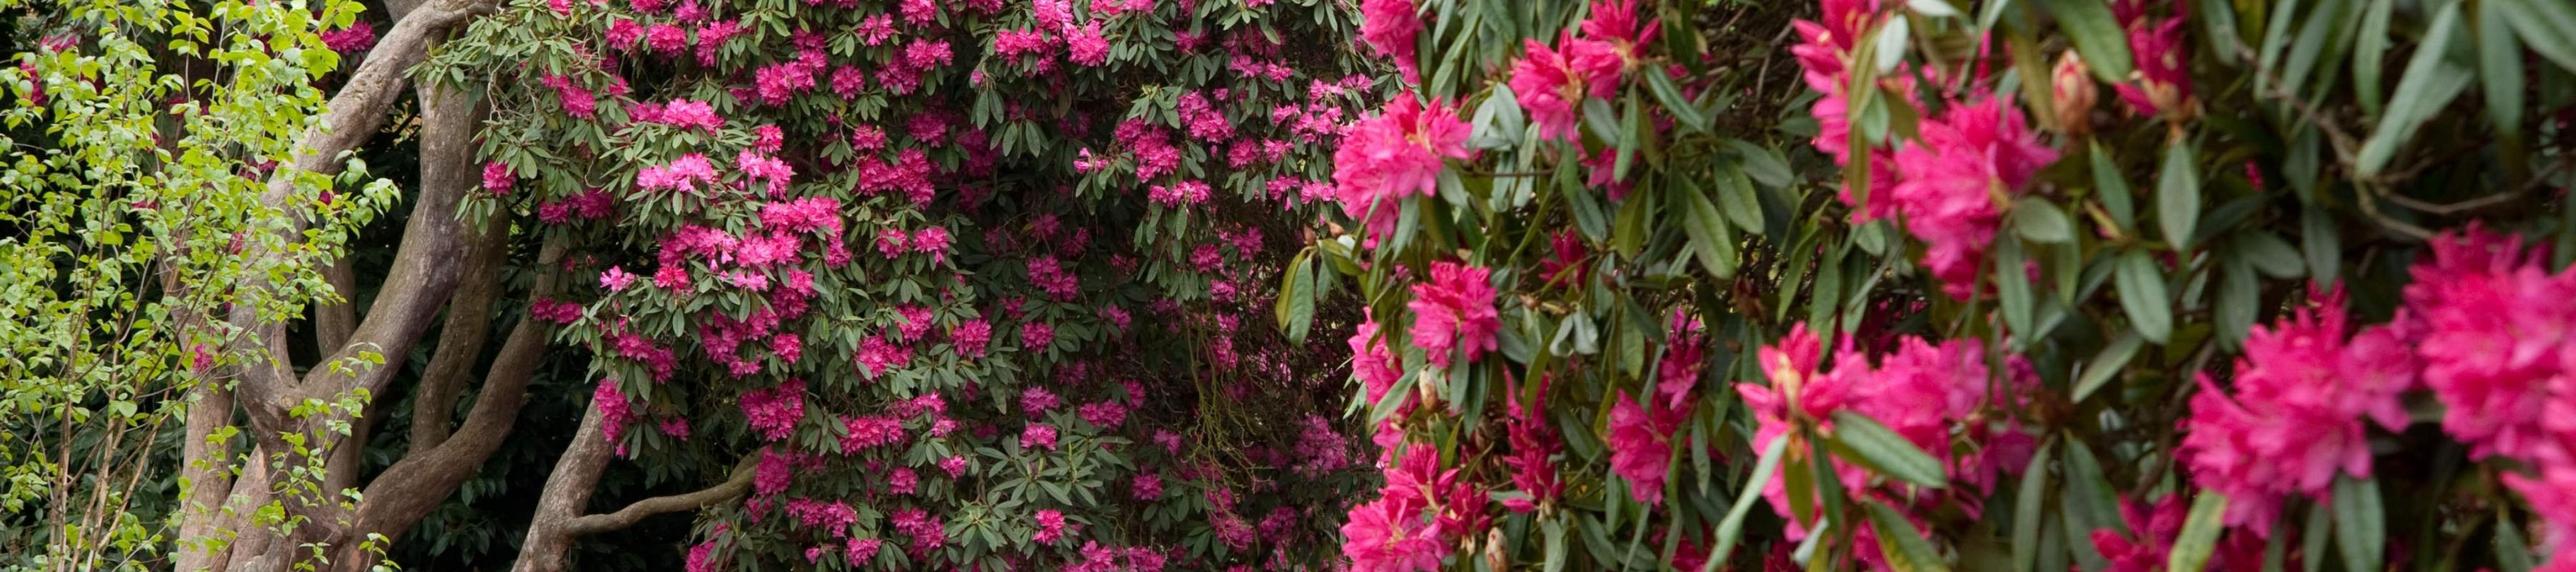 Rhododendrons in full bloom at Kew